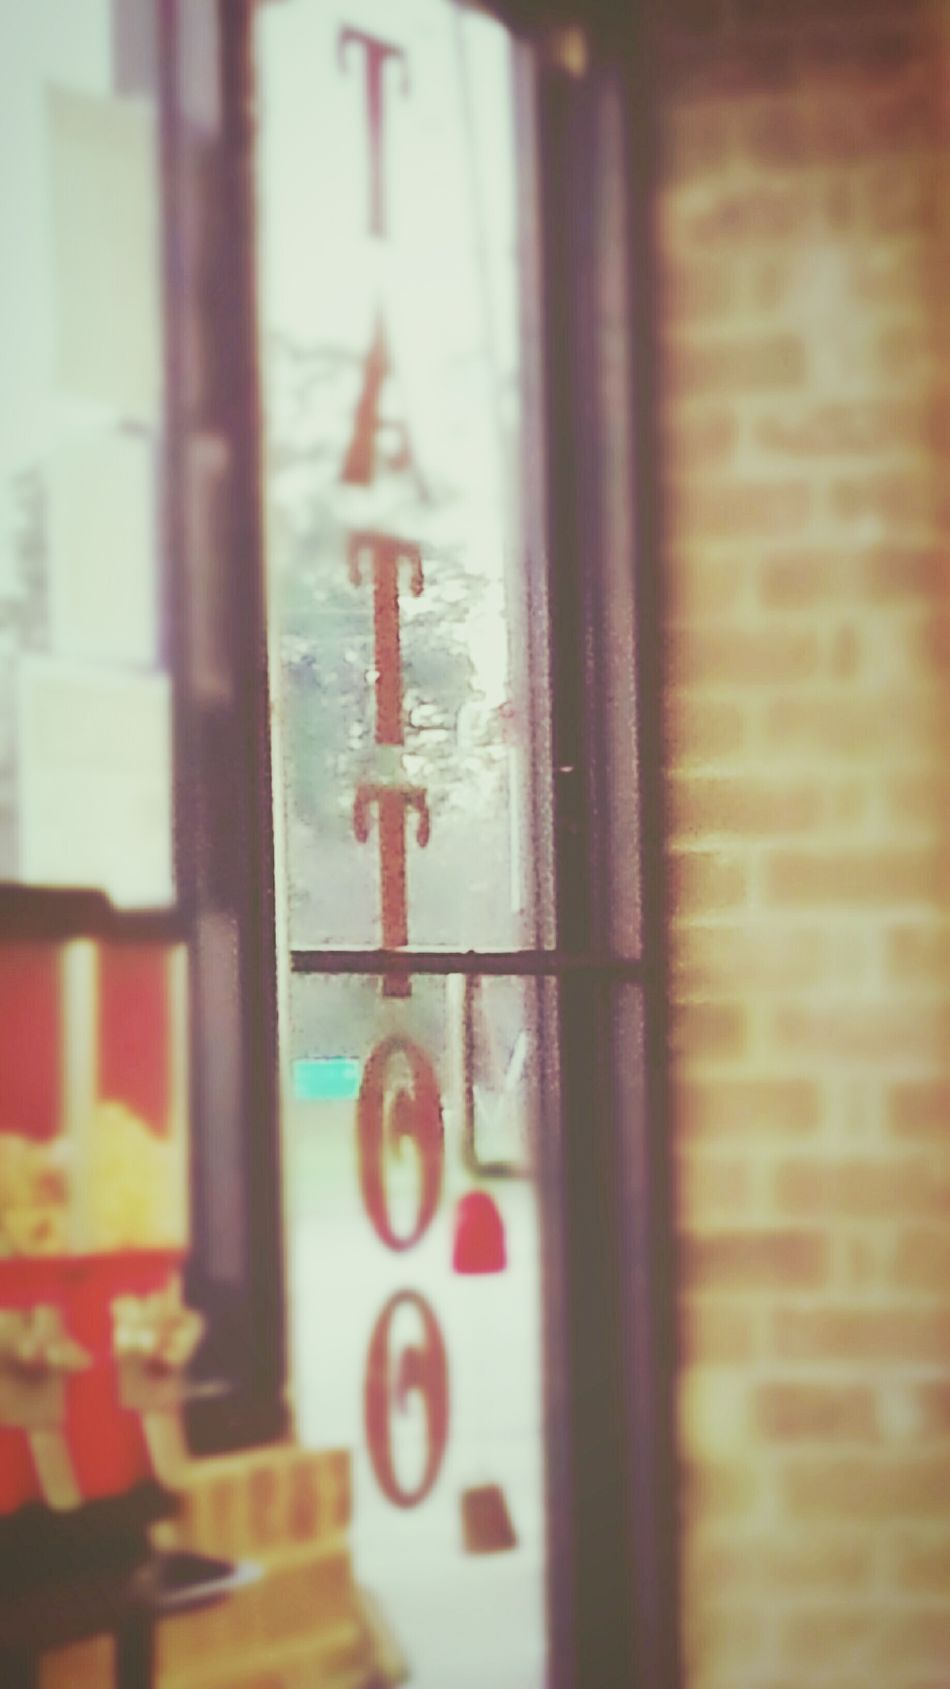 Indoors  Day EyeEmNewHere Check This Out EyeEm Gallery Parlor Obstruction Window Body Modification Window Barrier Security Door Tattoo Shop Tattoo Shop Life MAD HATTER'S TATTOO EXPERIENCE KingwoodTexas Houston Texas Sunny Waiting Room Artist Waiting The Wait Appointment